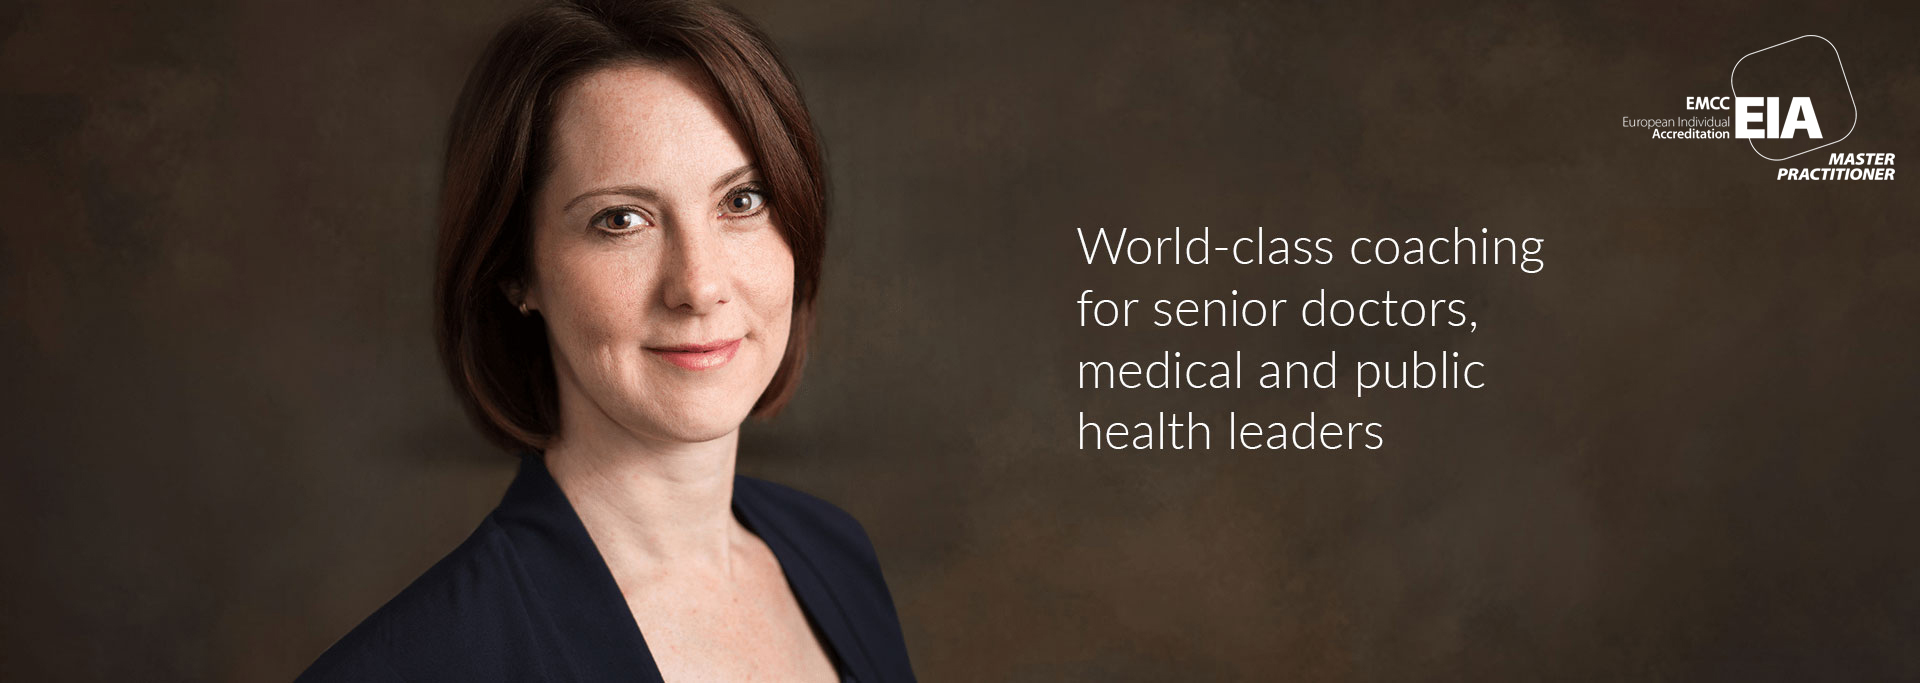 World-class coaching for senior doctors, medical and public health leaders